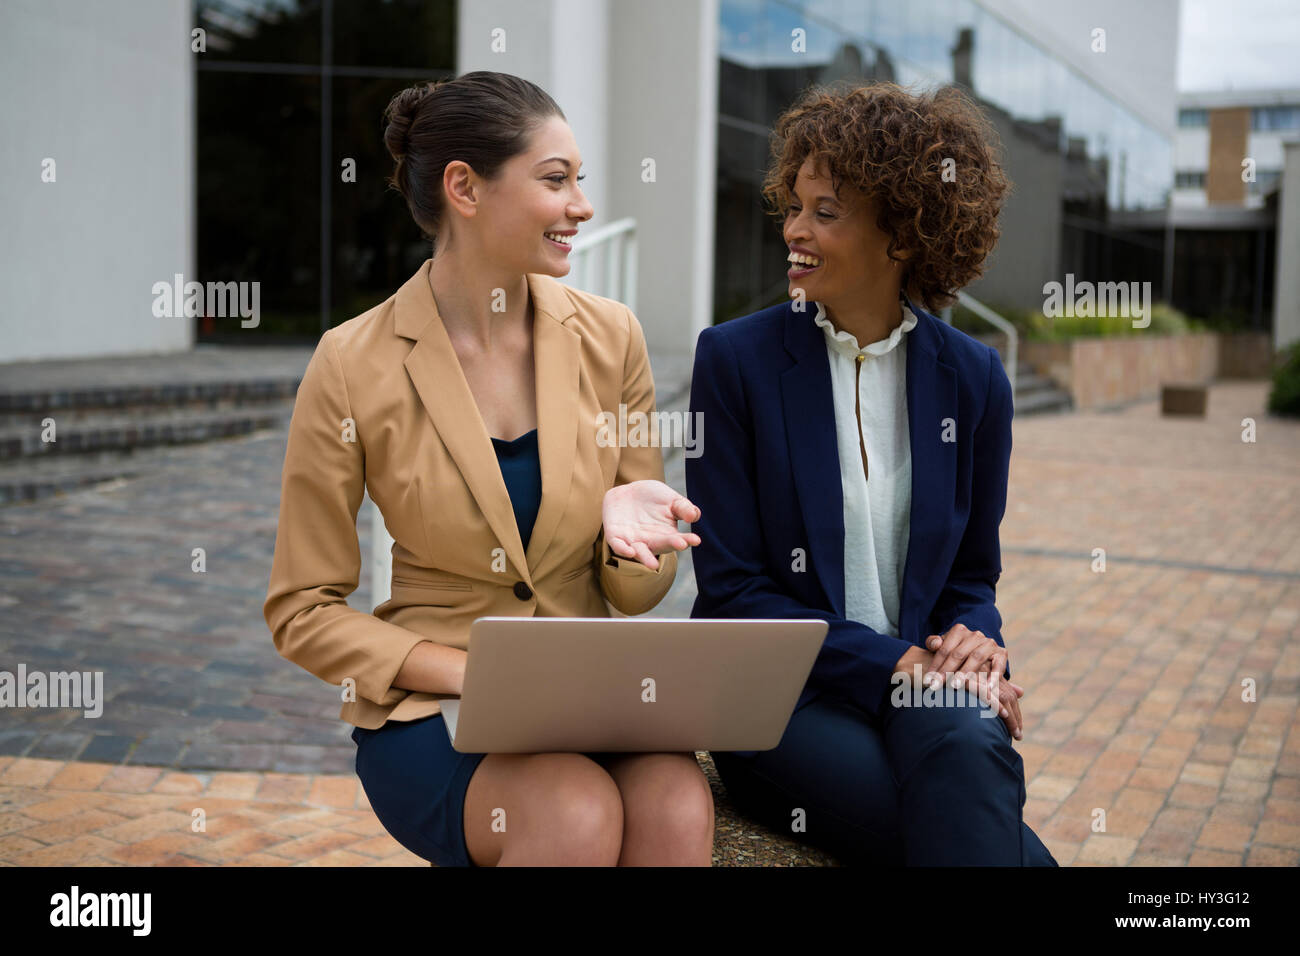 Portrait of two businesswomen interacting with each other in the office premises - Stock Image